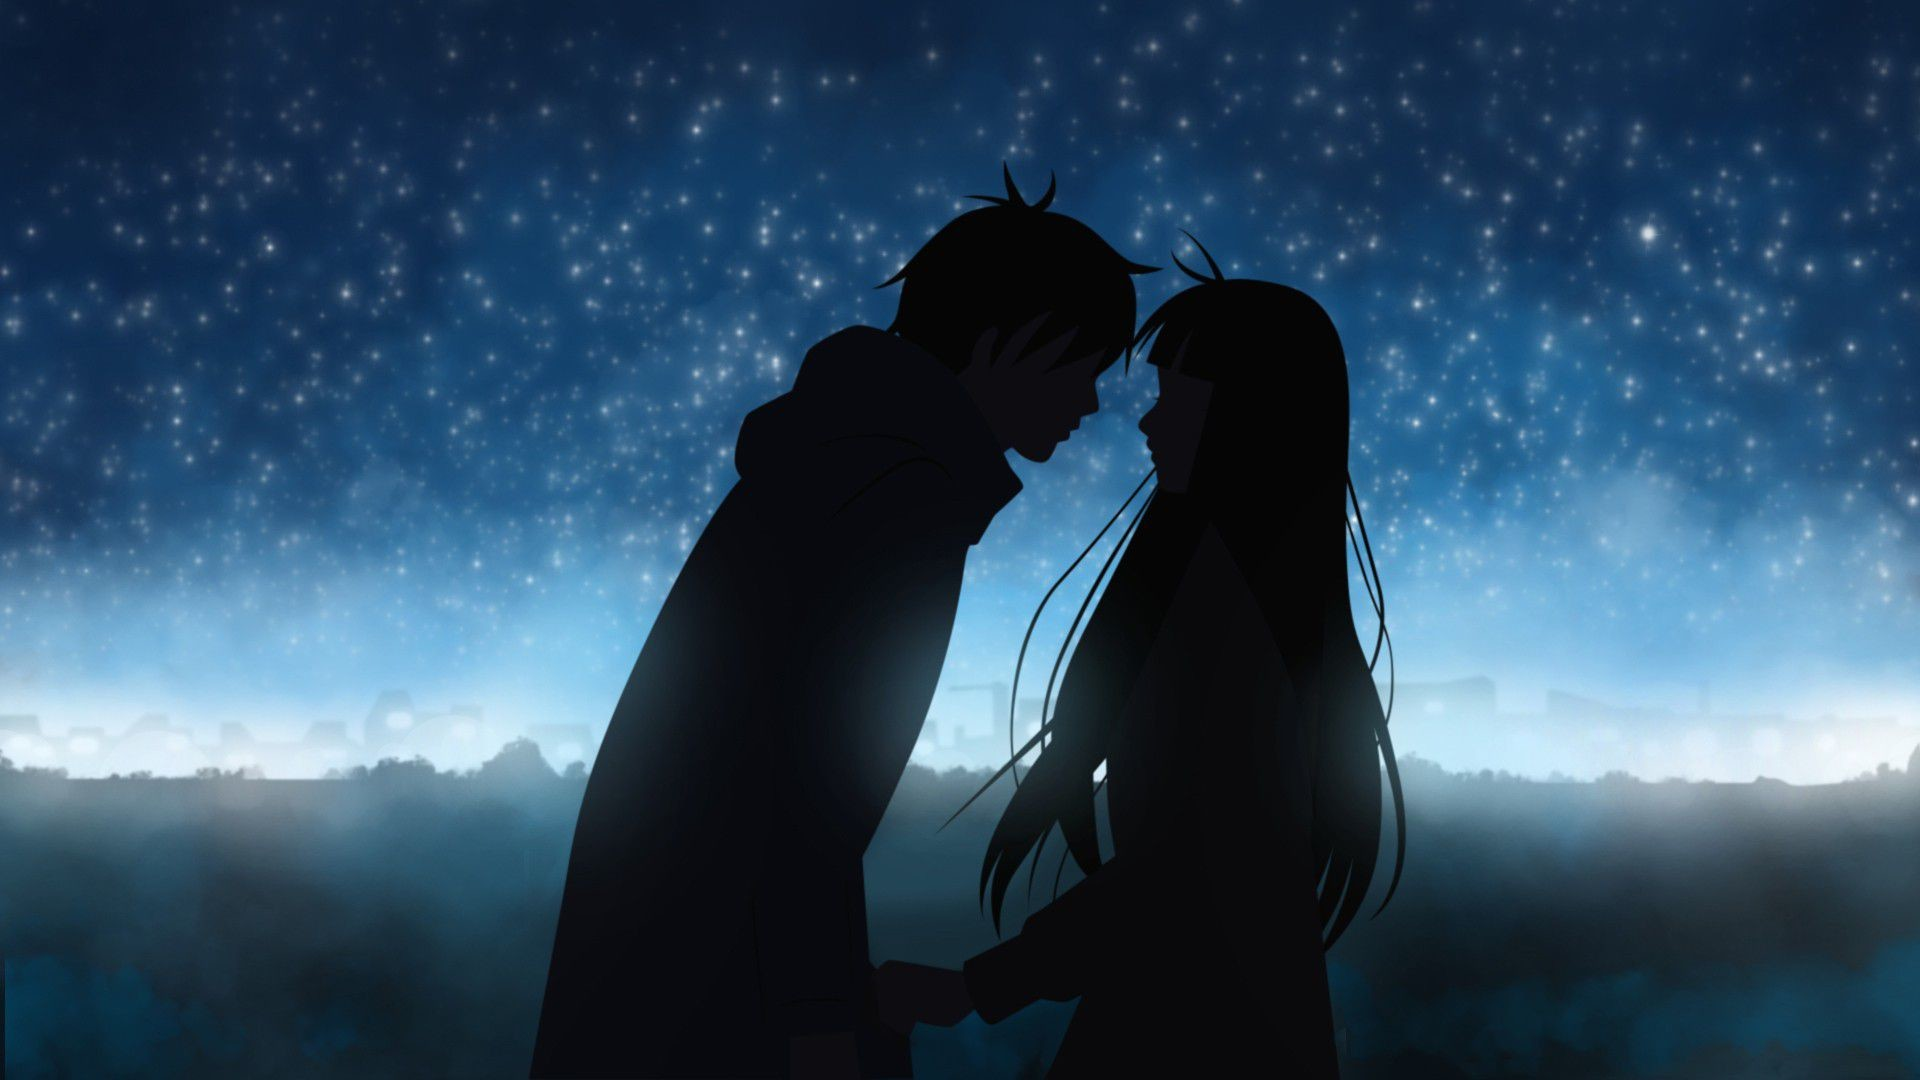 X Anime Couples Hd Wallpapers